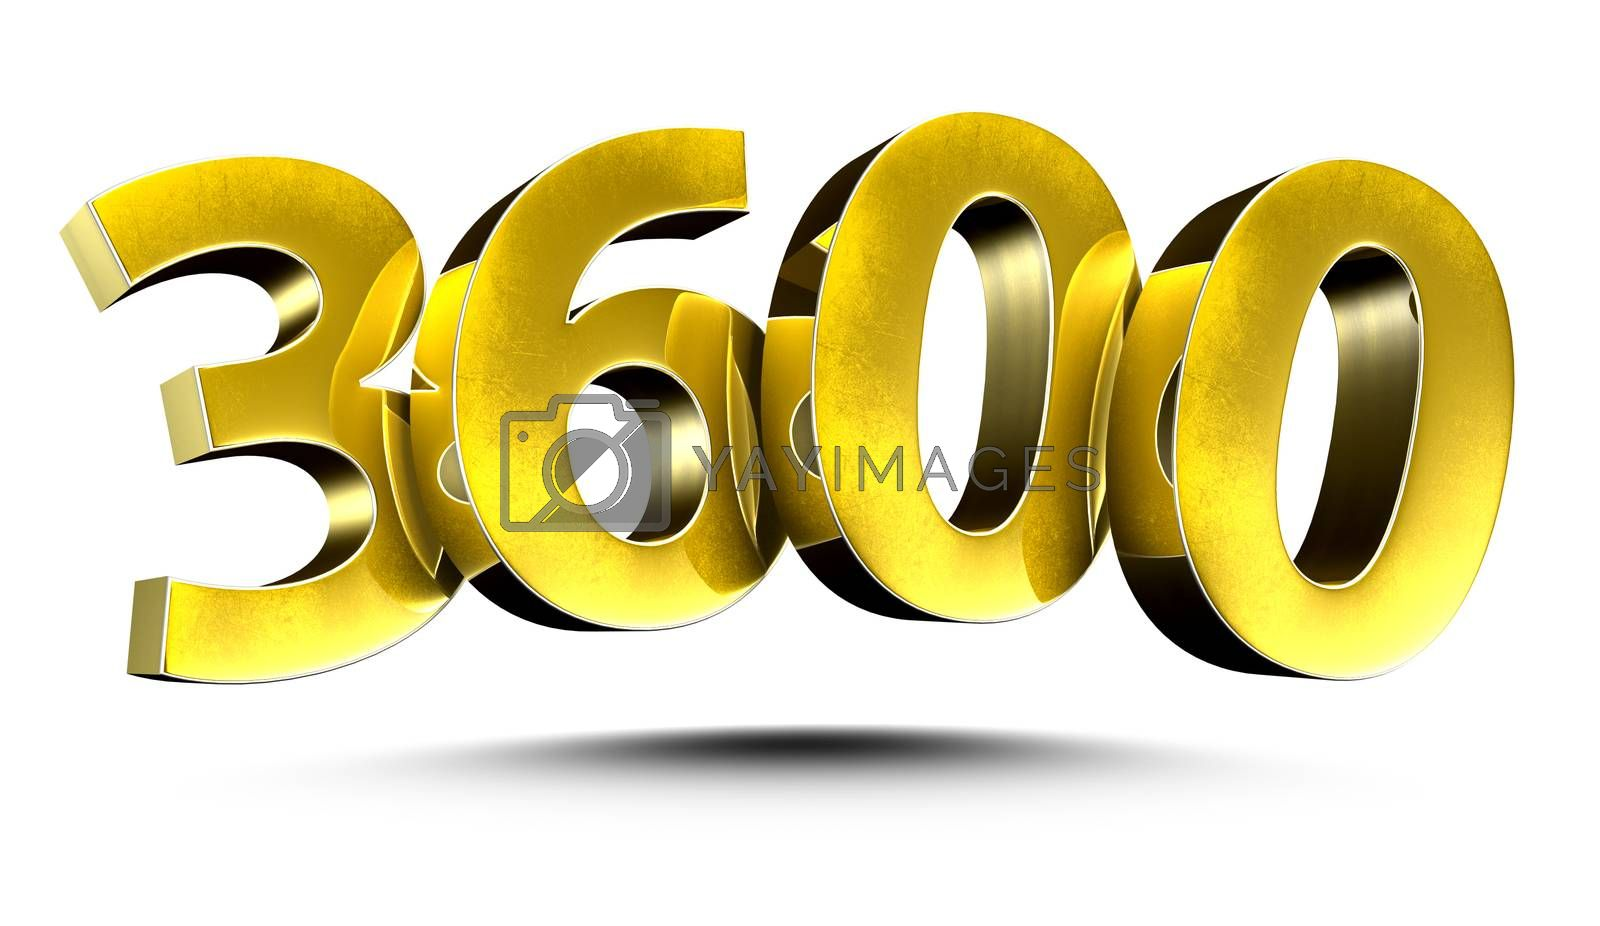 3D illustration Numbers 3600 Gold isolated on a white background.(with Clipping Path)